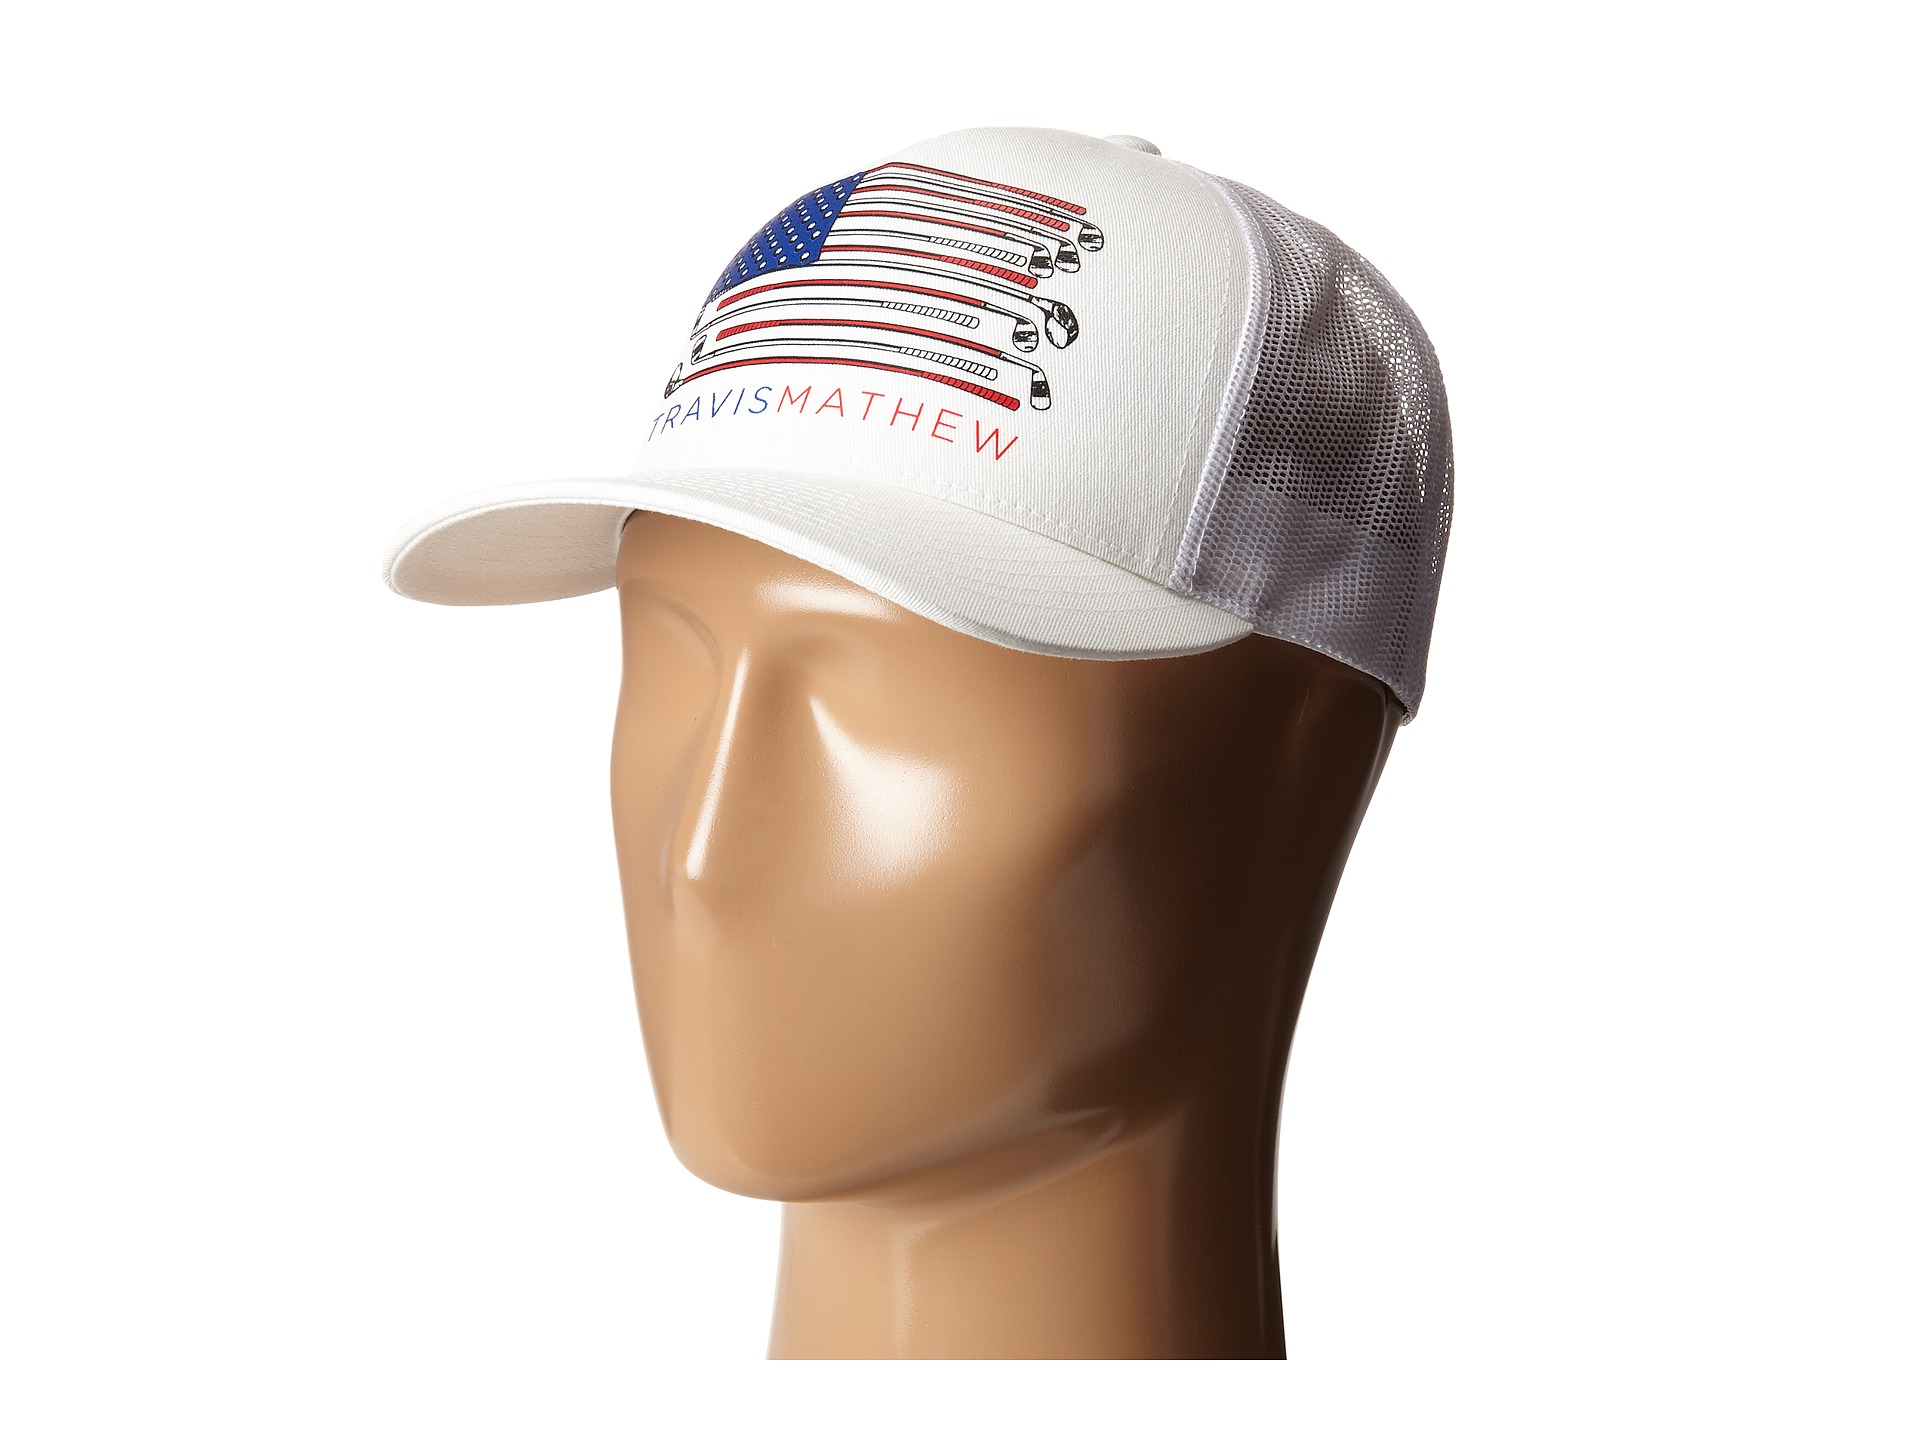 ... new zealand lyst travis mathew old glory hat in white for men 528d3  ad299 f284a7aa3213